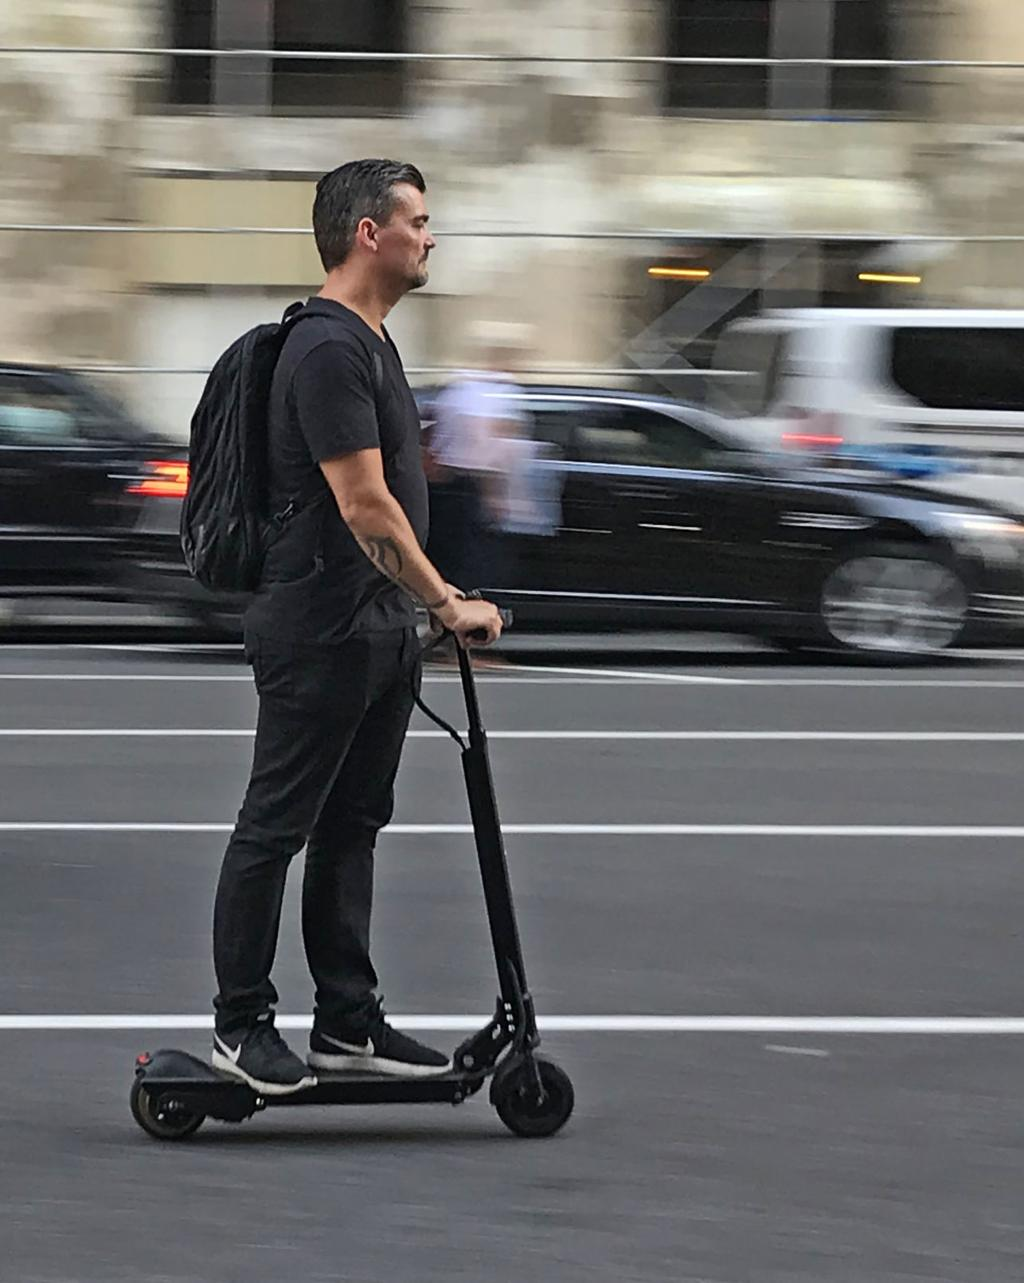 Q&A: Where you can (and can't) ride a scooter in Omaha, the cost and